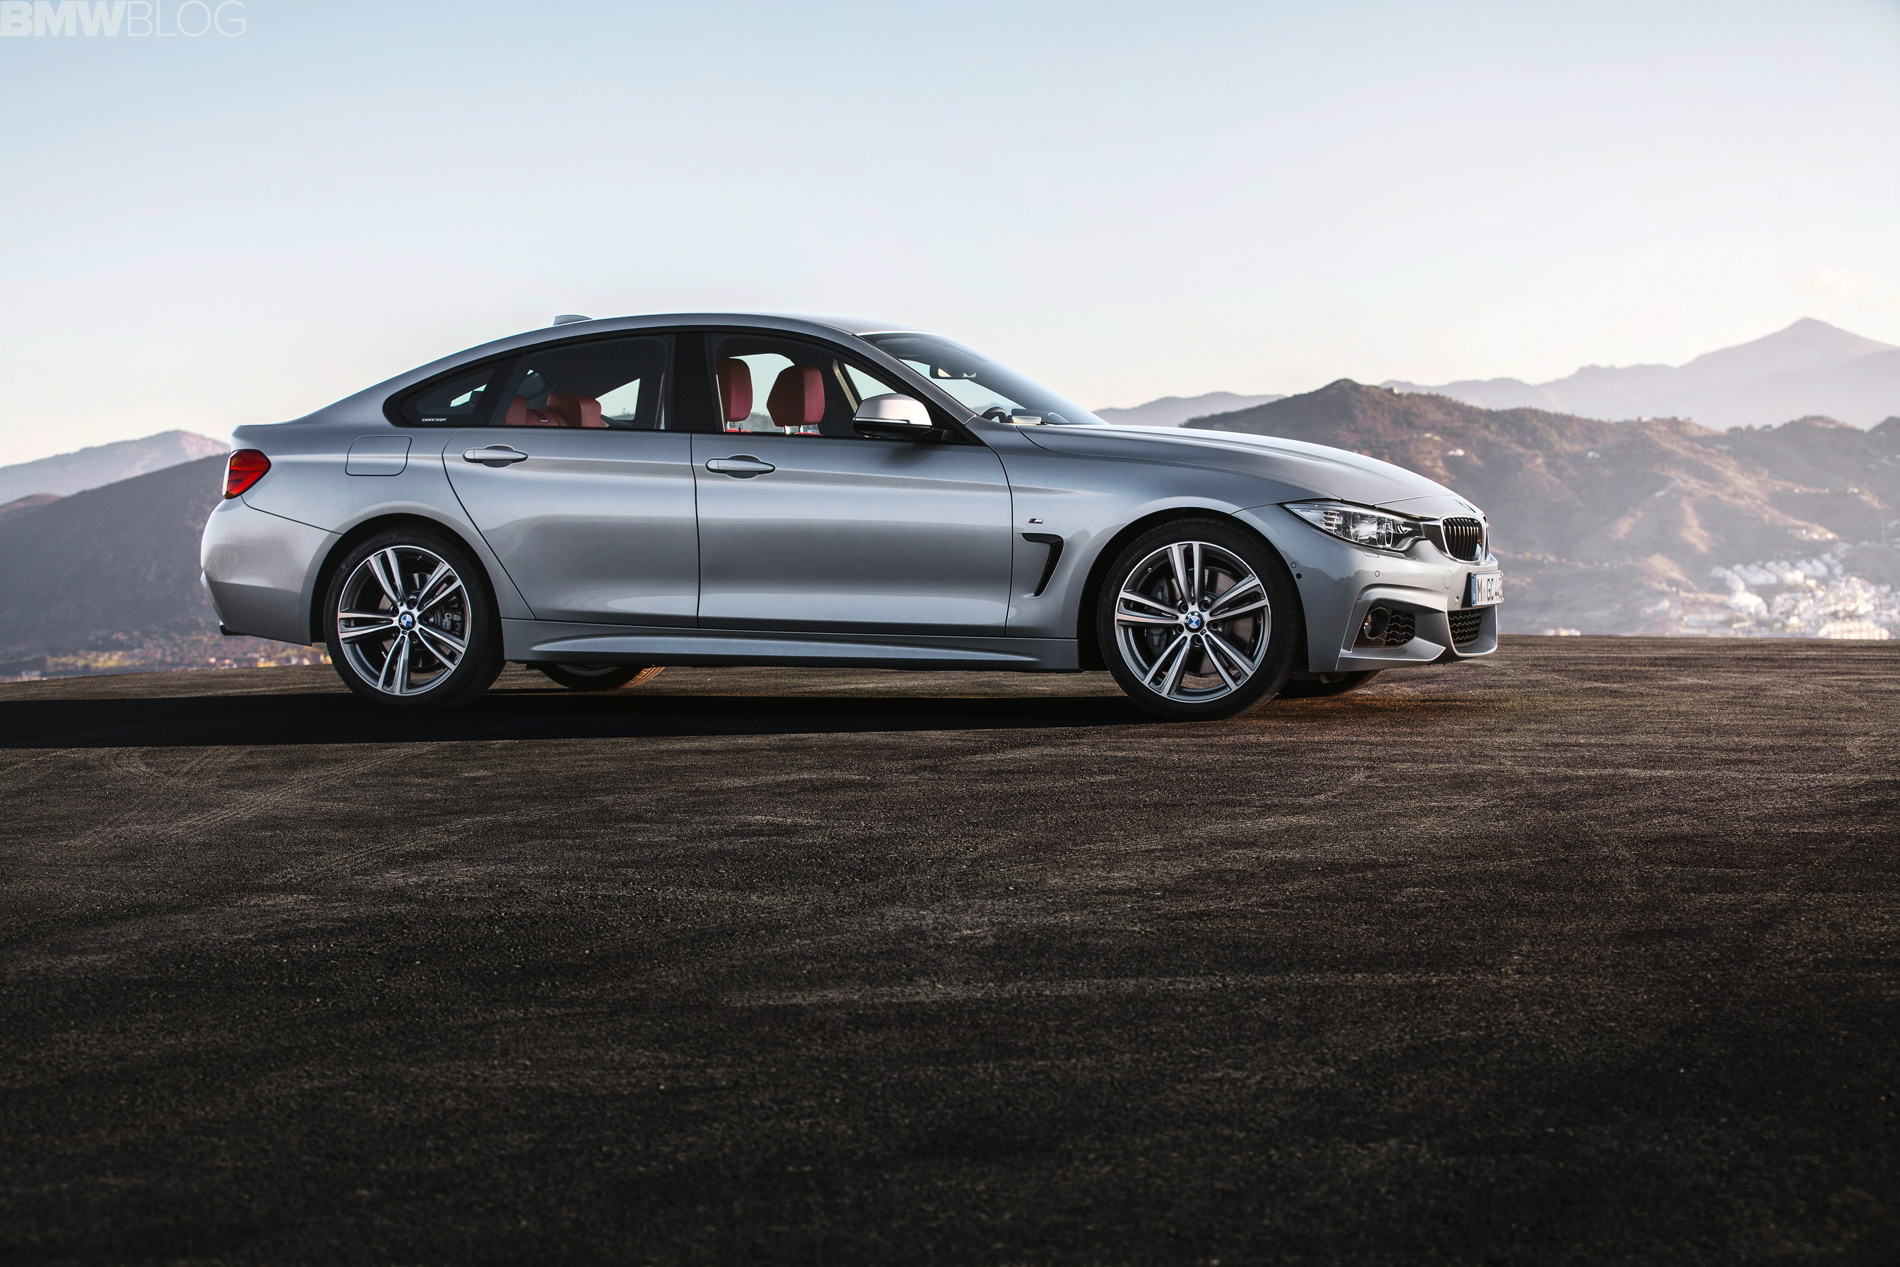 Bmw 4 Series Gran Coupe Explained By Designers